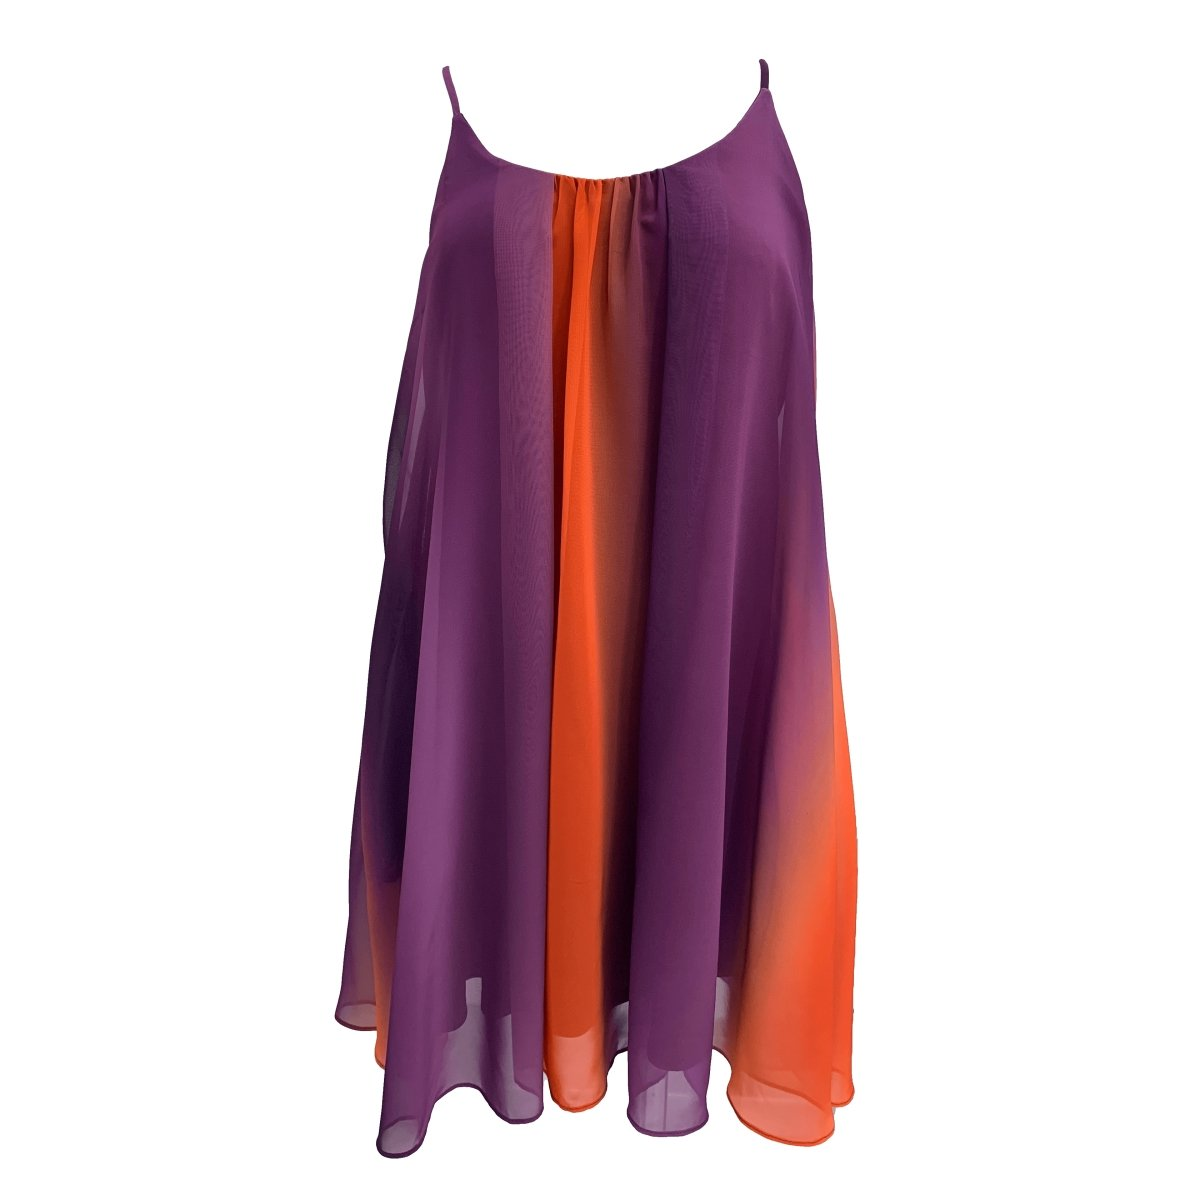 Adrienne Inc Orange and Purple Ombre Swing Dress - Mr. Knickerbocker